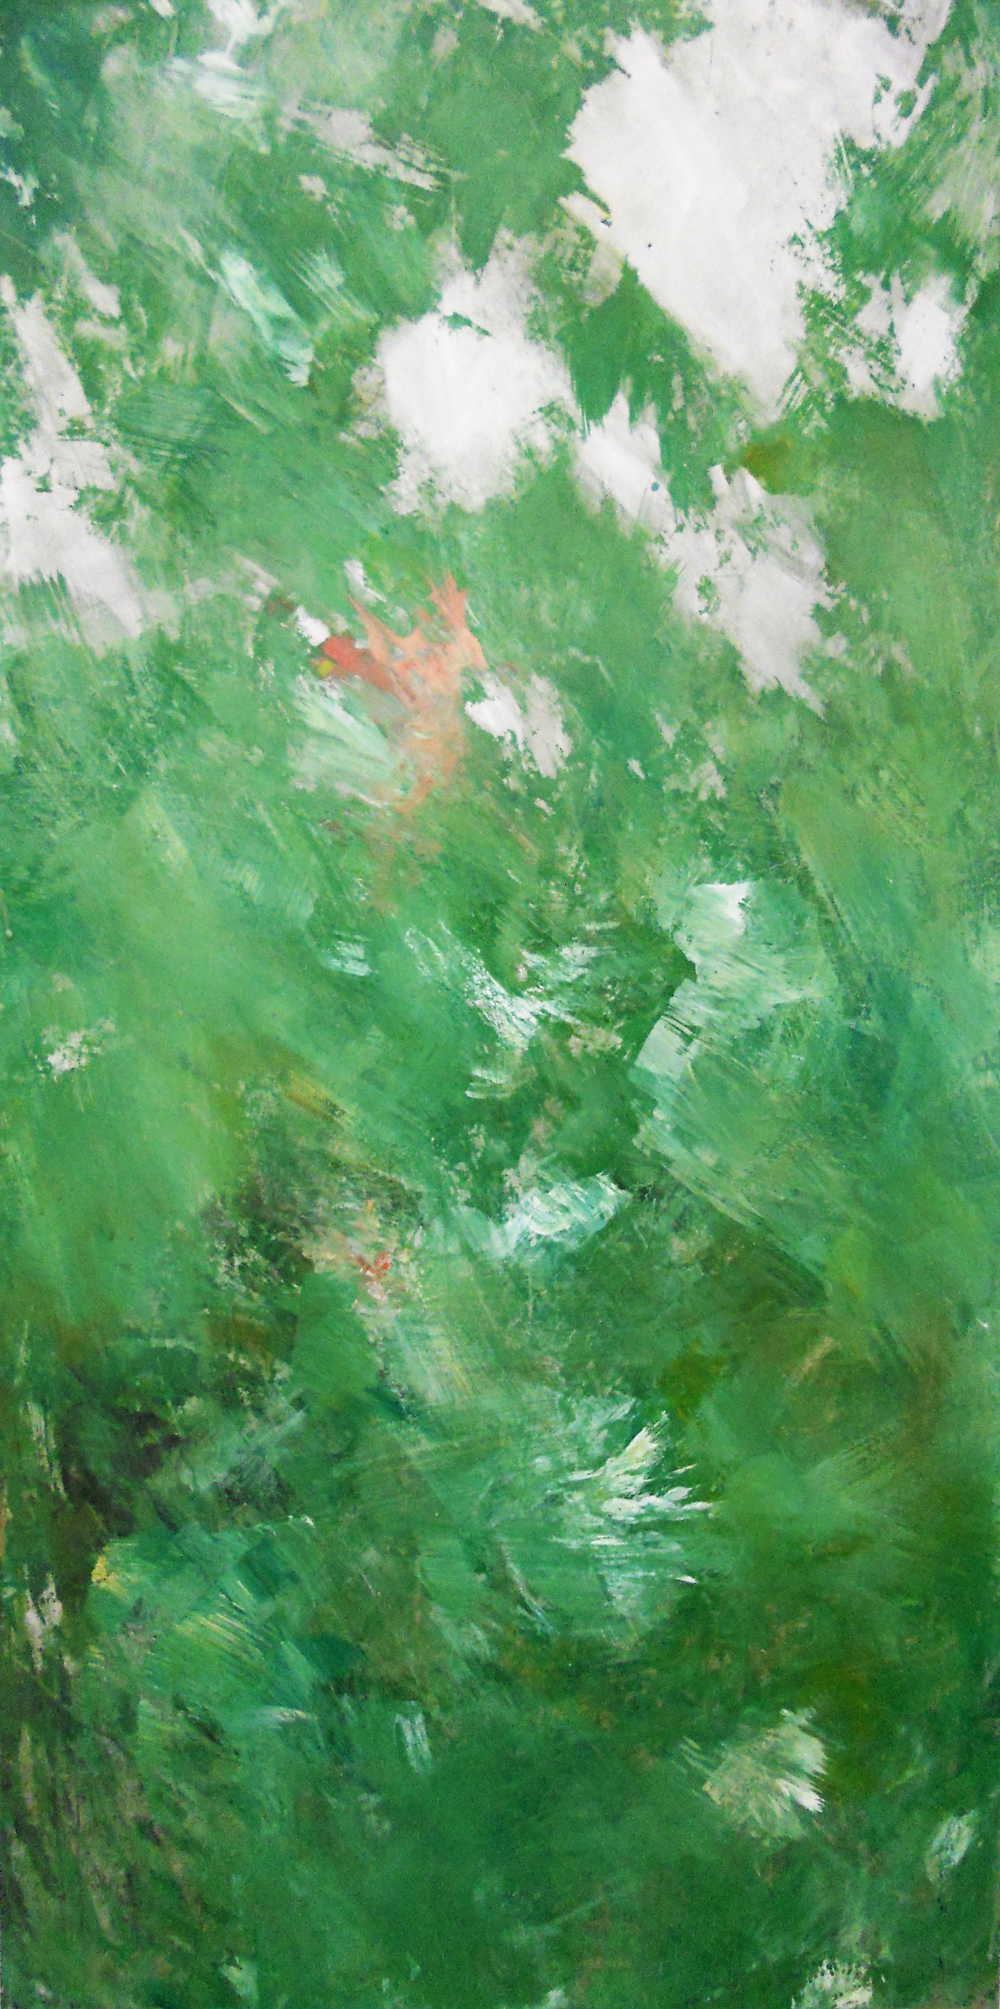 Le Printemps, 2014    Mixed media on aluminum // 24 x 48 inches